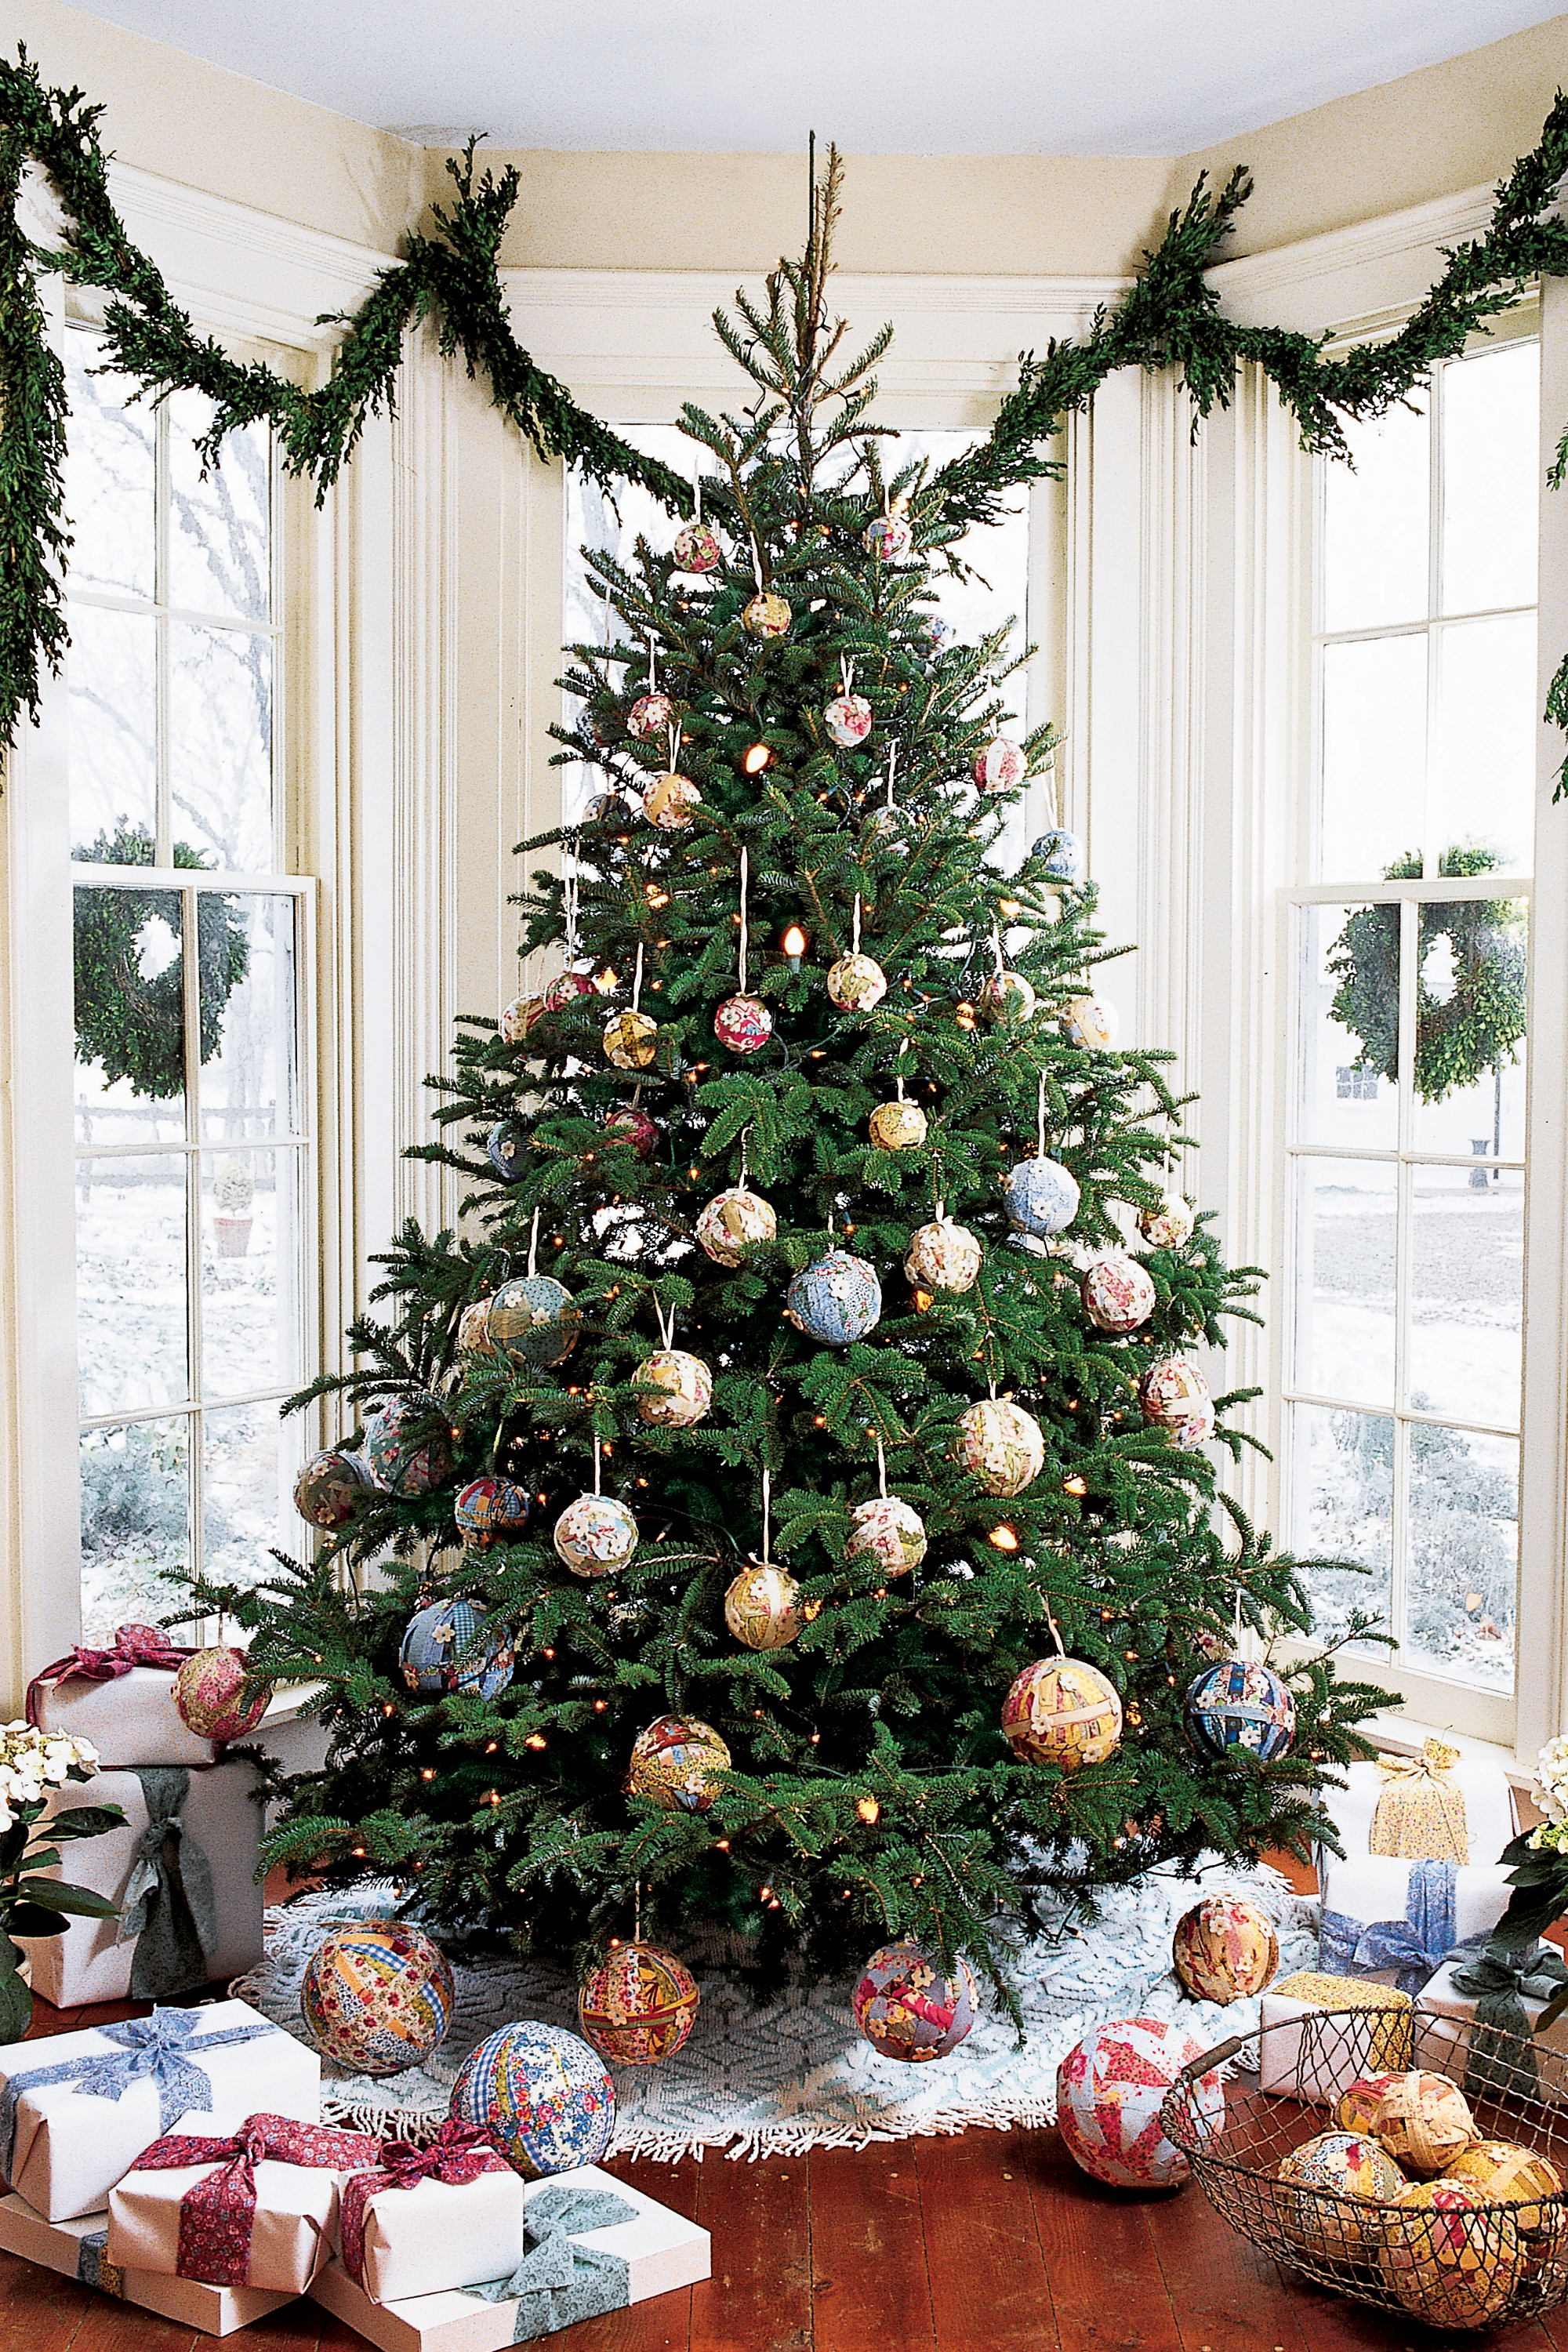 Non traditional christmas tree ideas - Non Traditional Christmas Tree Ideas 57